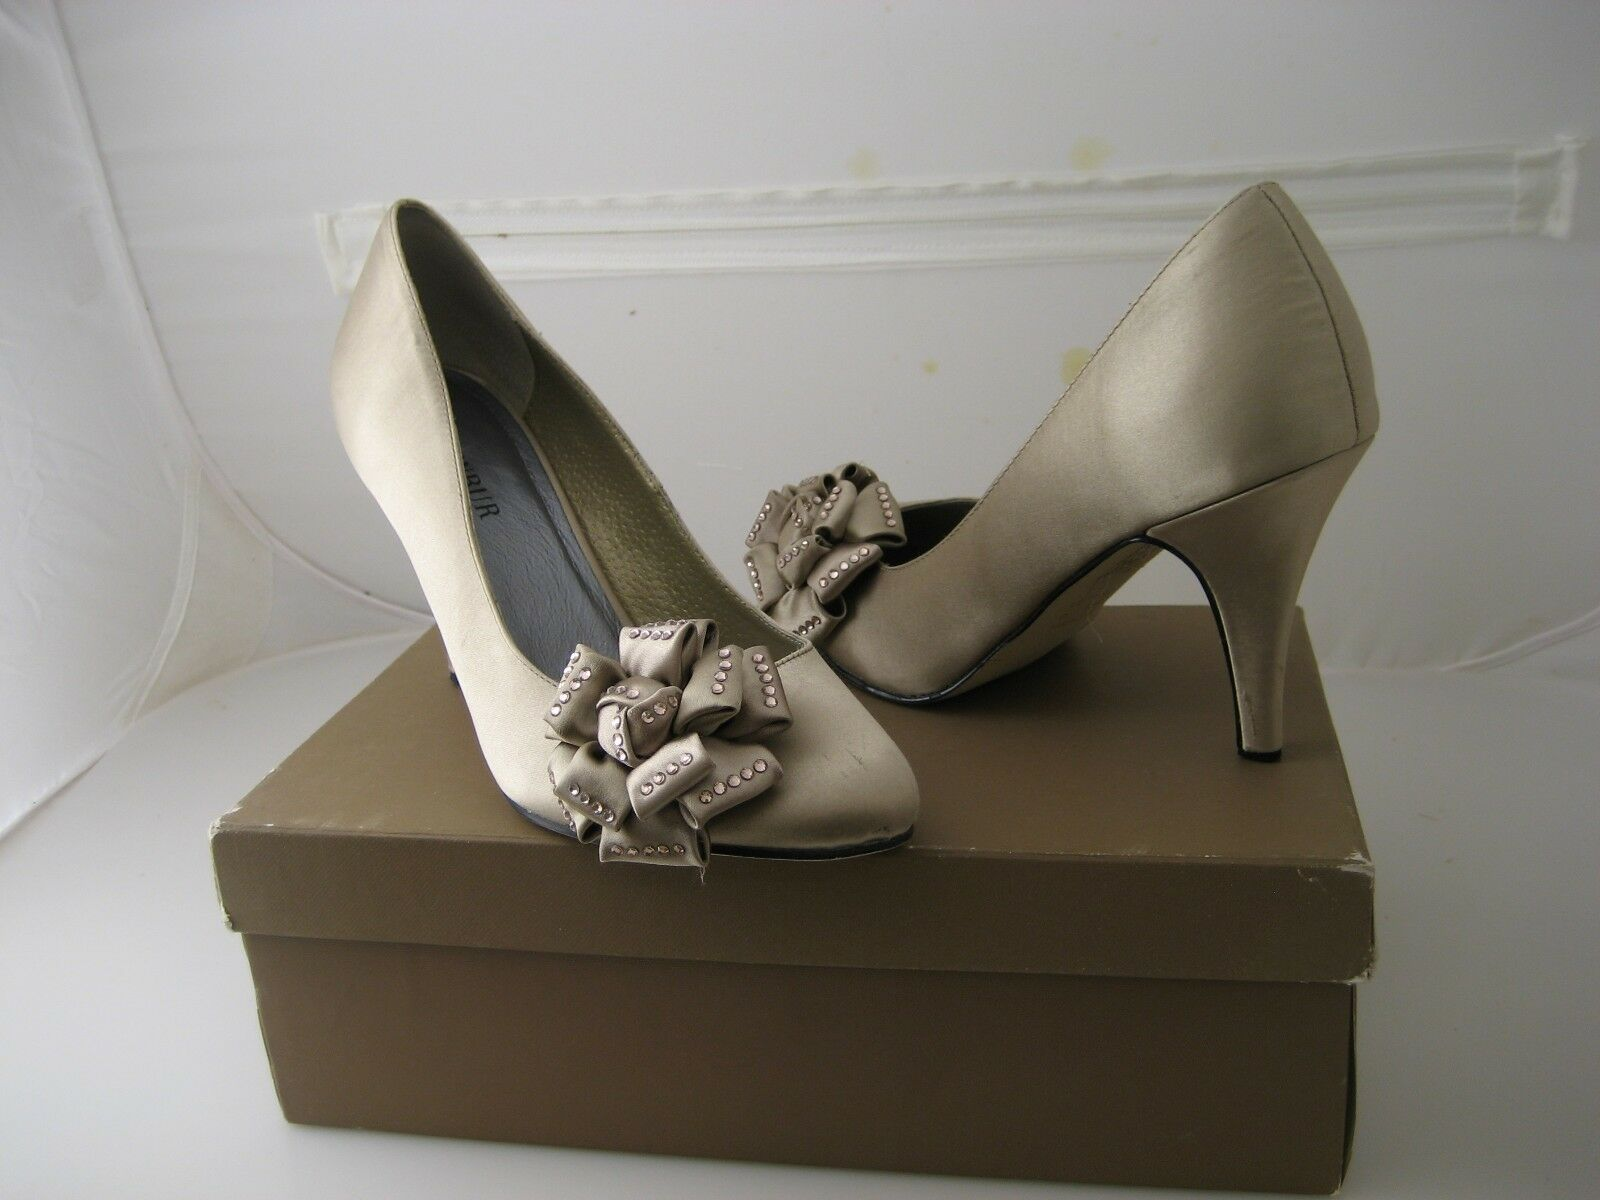 Menbur  Satin Heel Flower pump  size 7.5